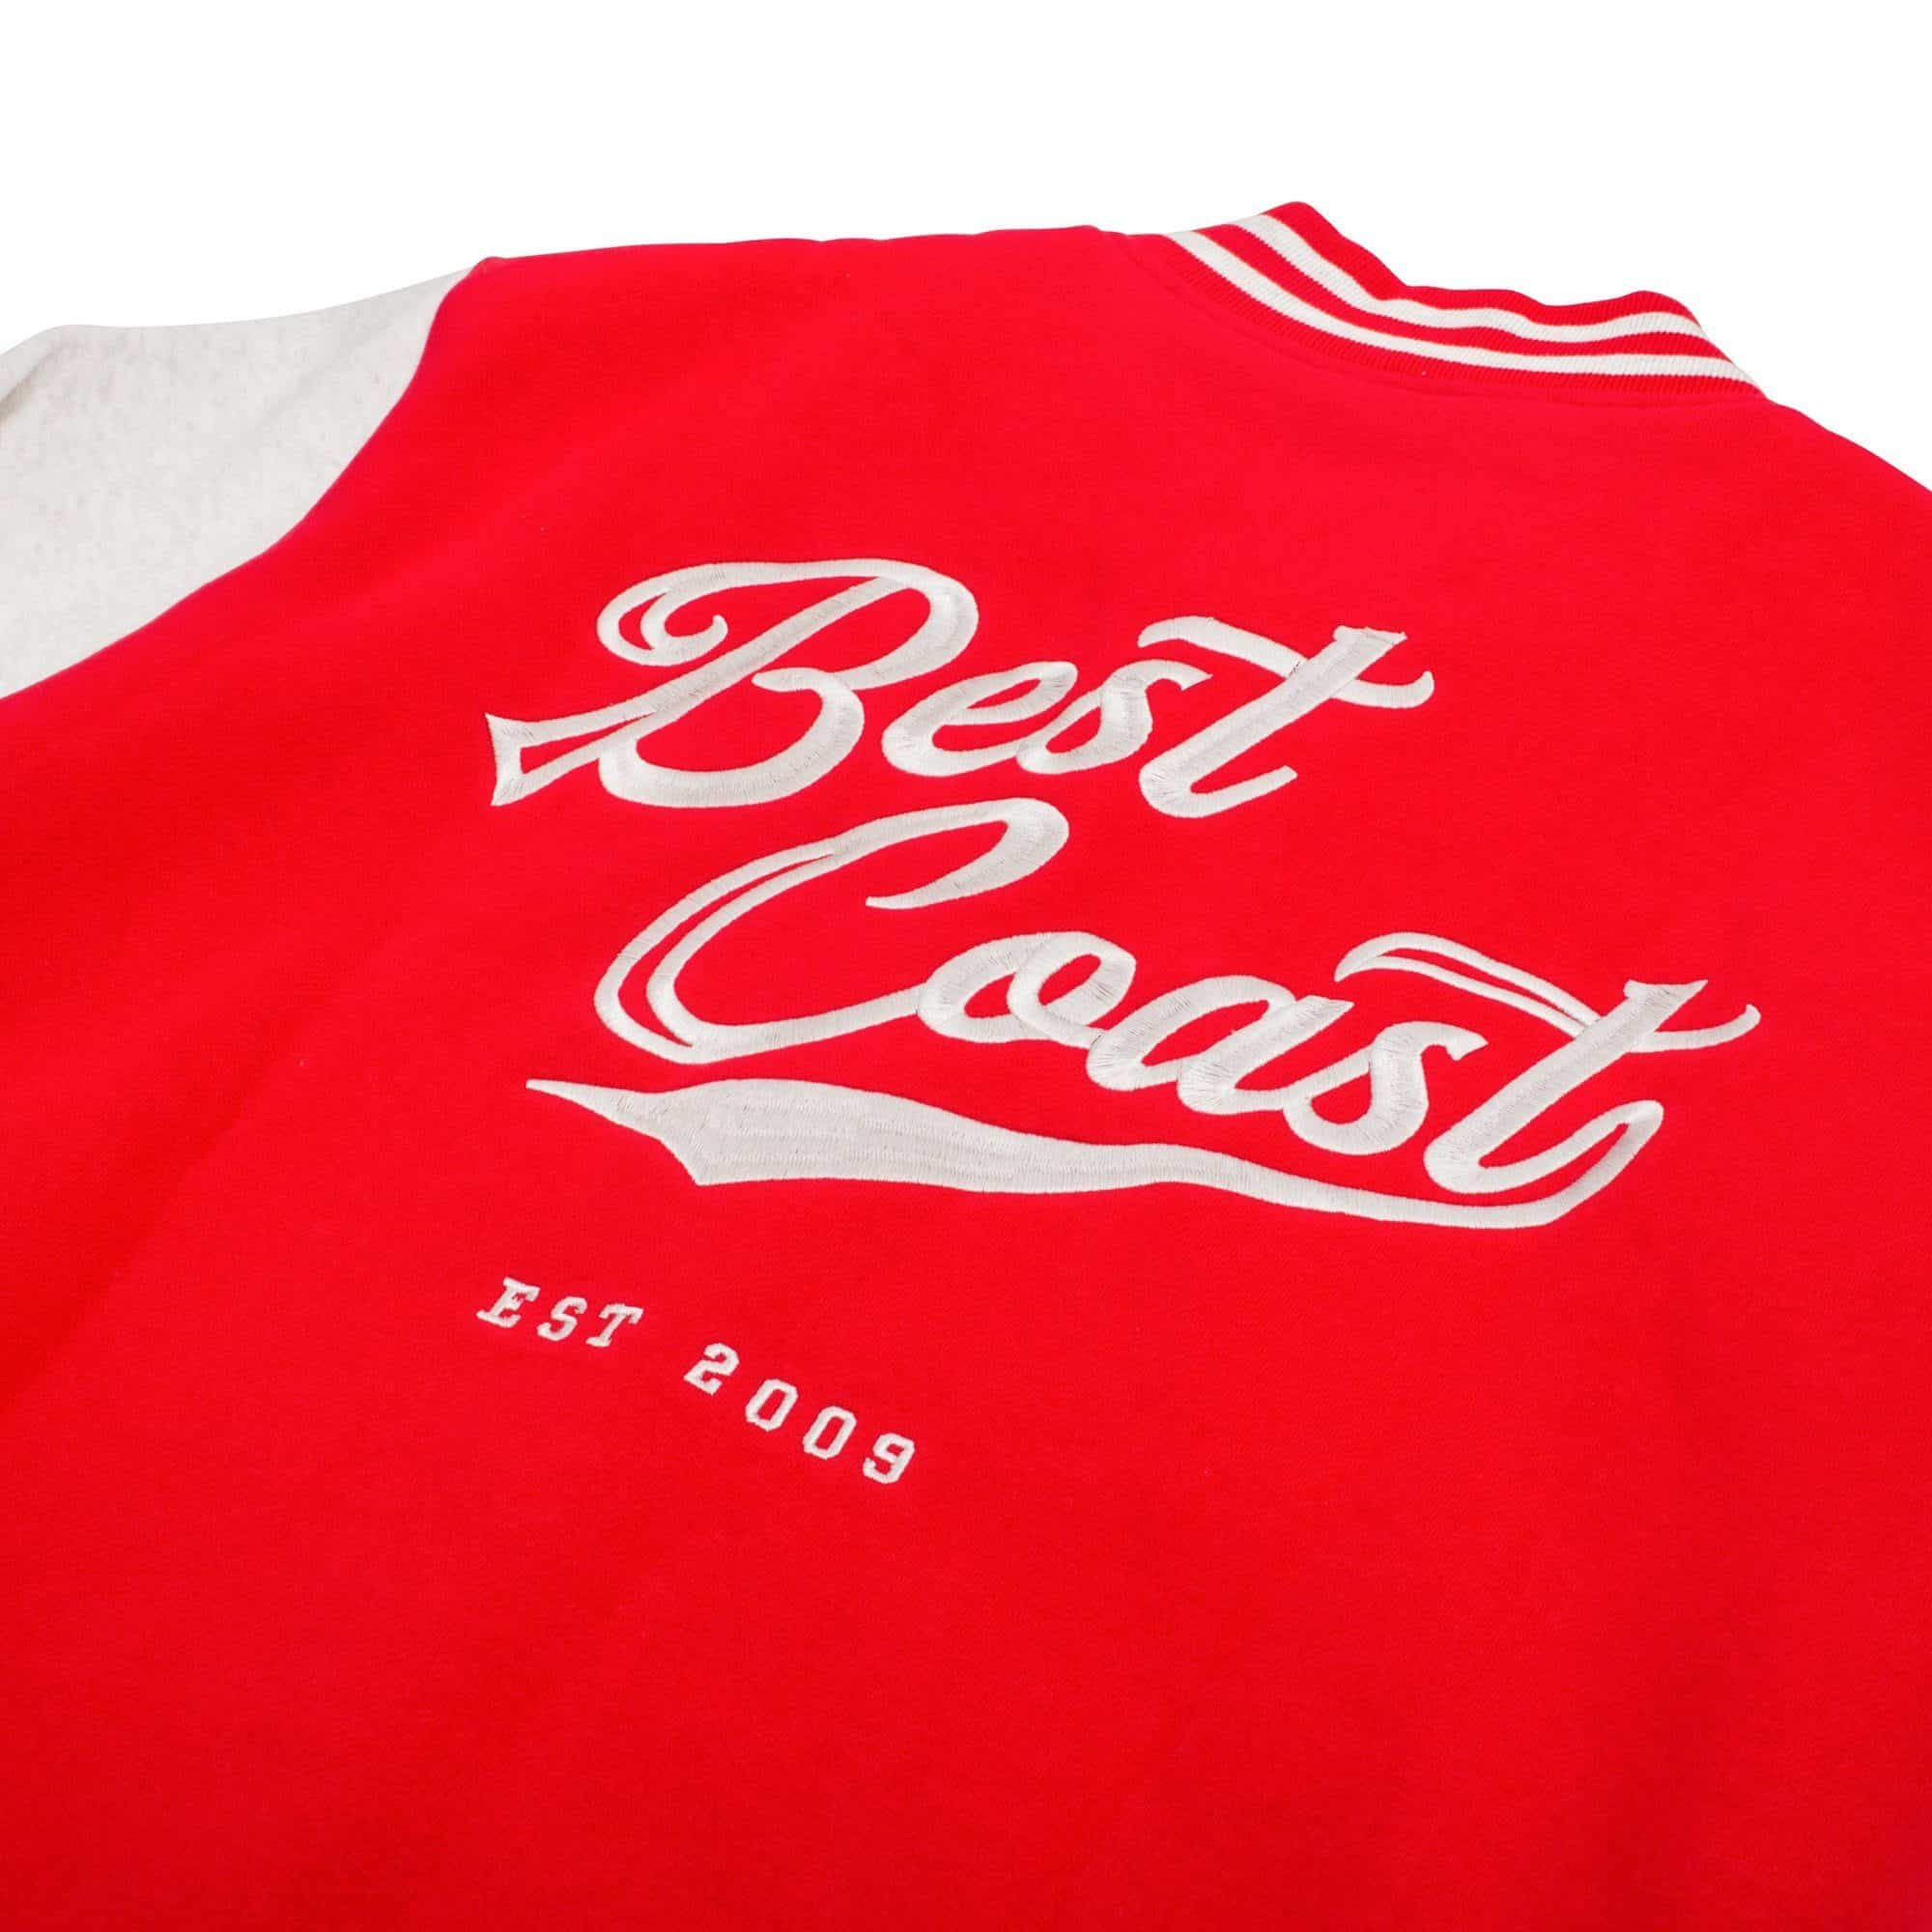 'Best Coast' Varsity Jacket